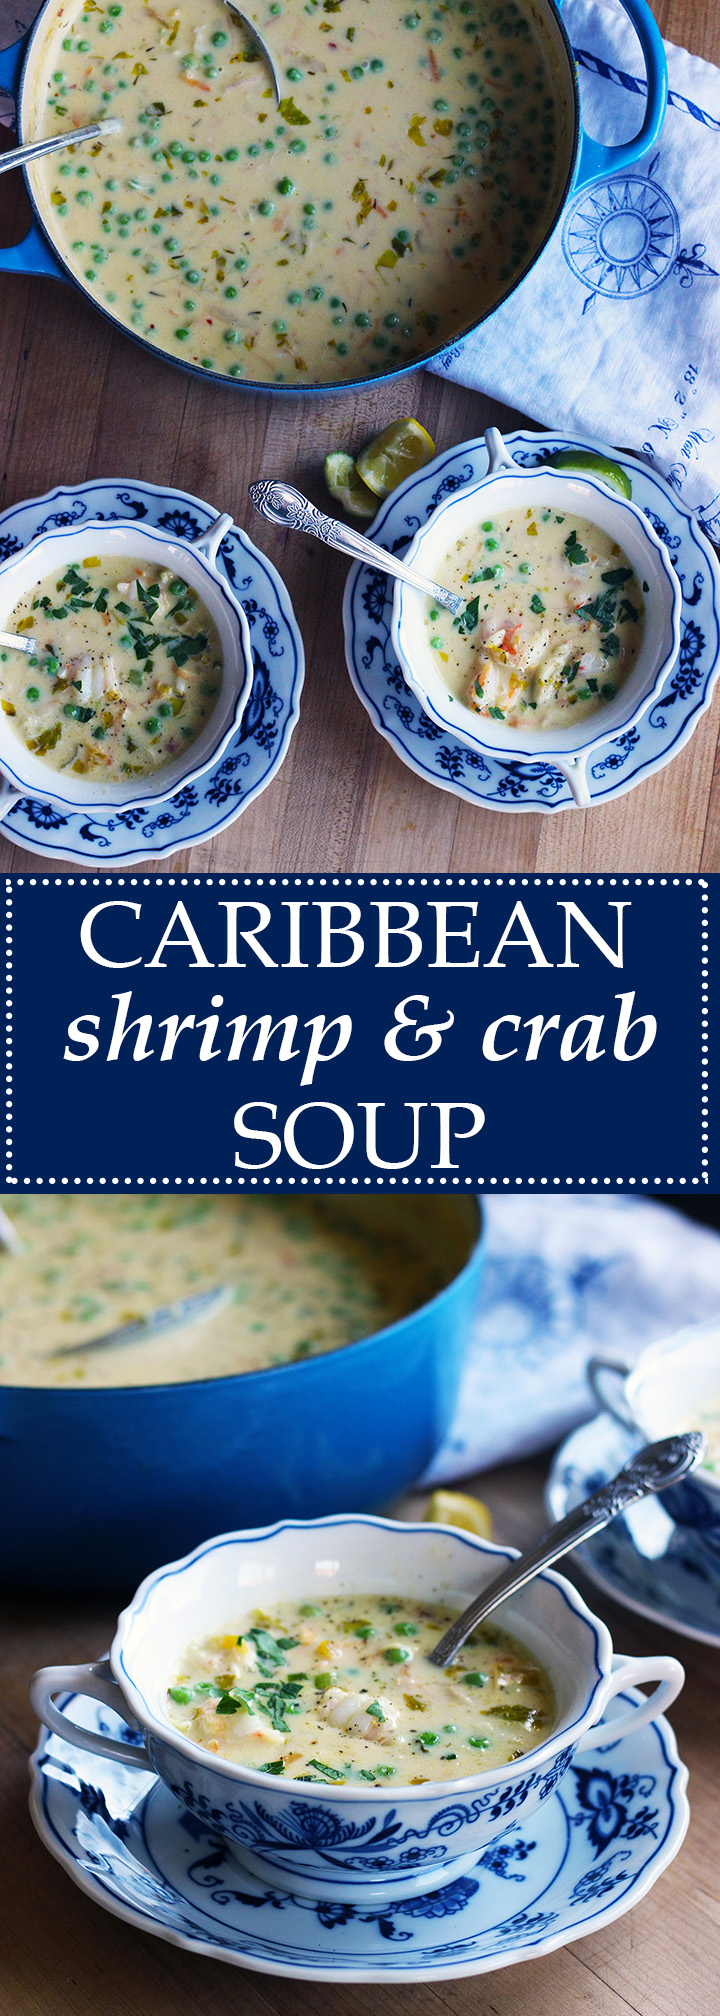 Caribbean Shrimp and Crab Soup | www.thetableofcontents.co